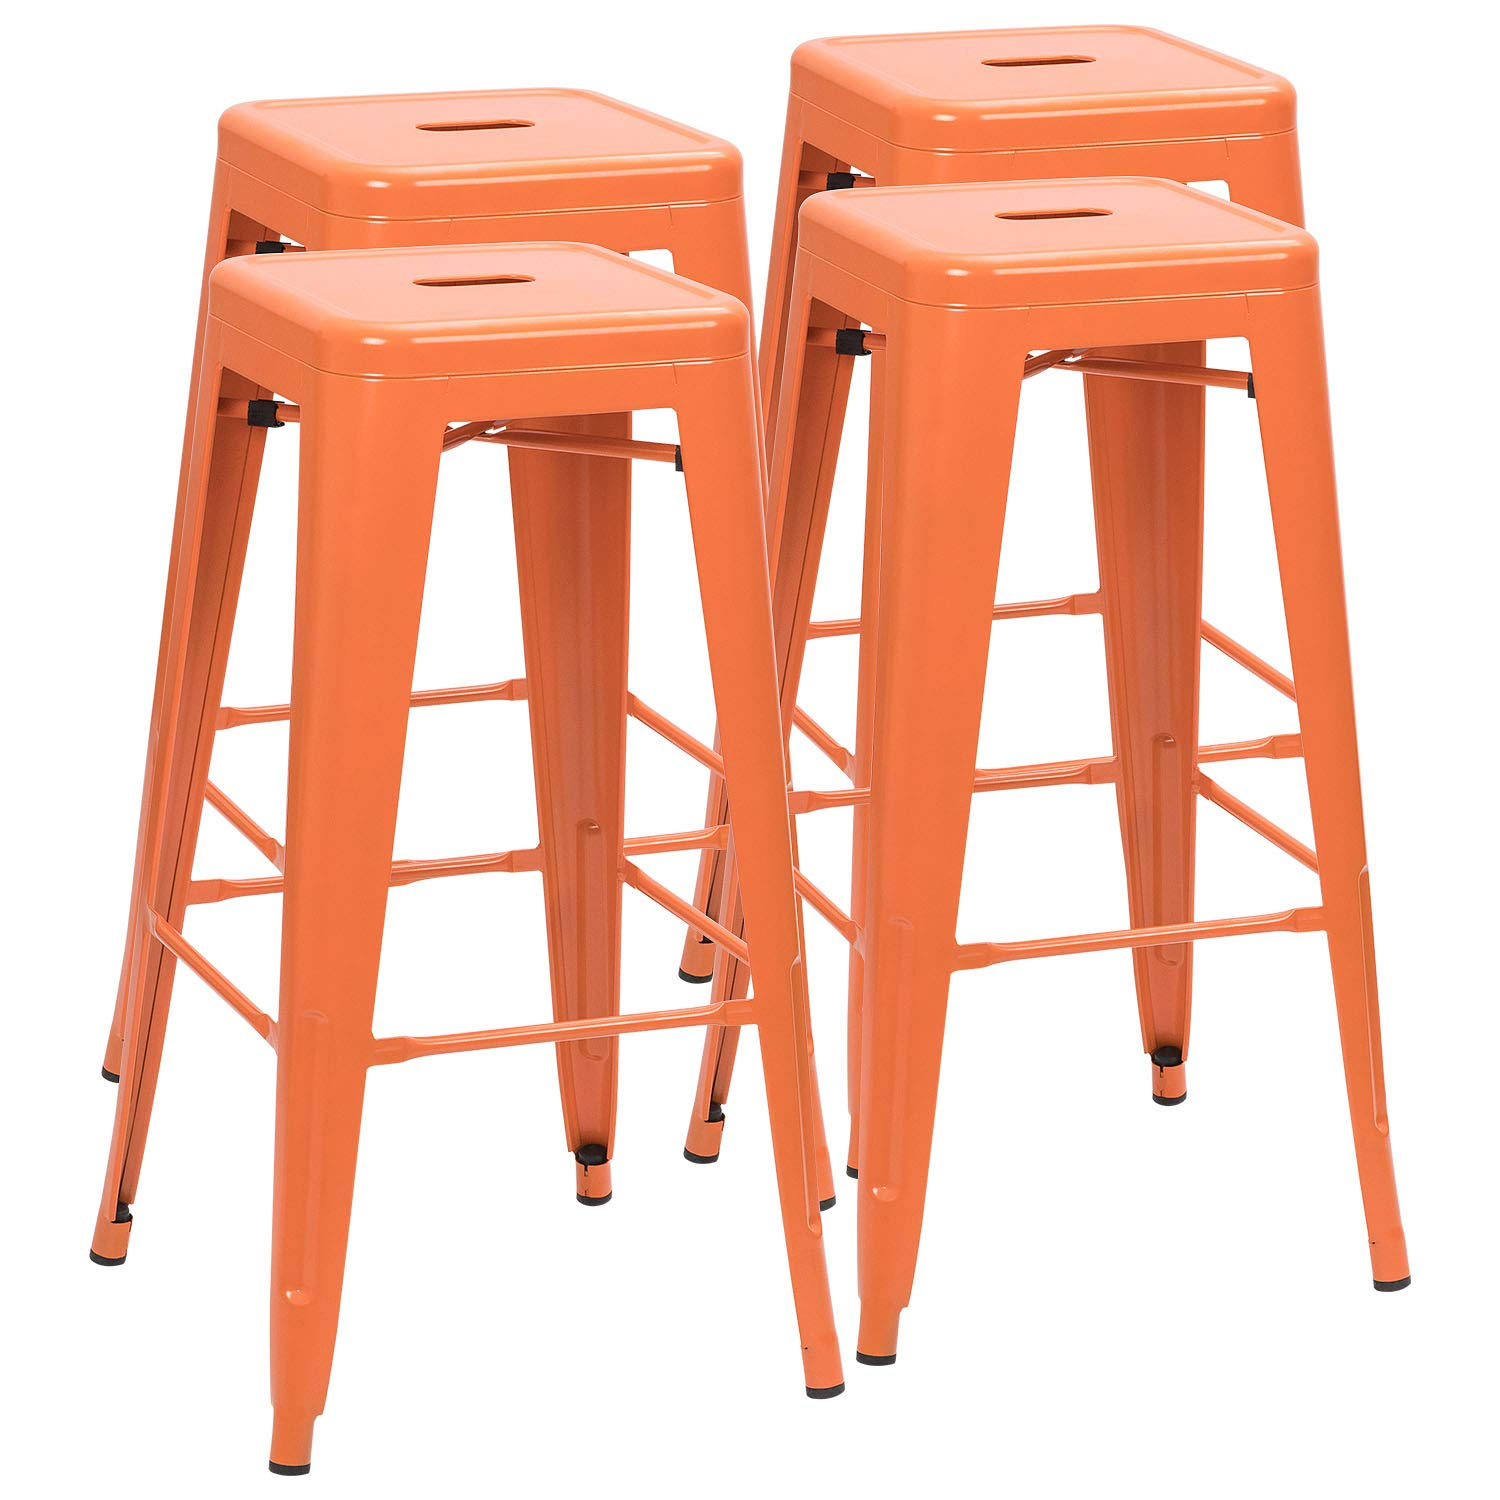 Furmax 30 Inches Metal Bar Stools High Backless Stools Indoor-Outdoor Stackable Orange Stools(Set of 4)